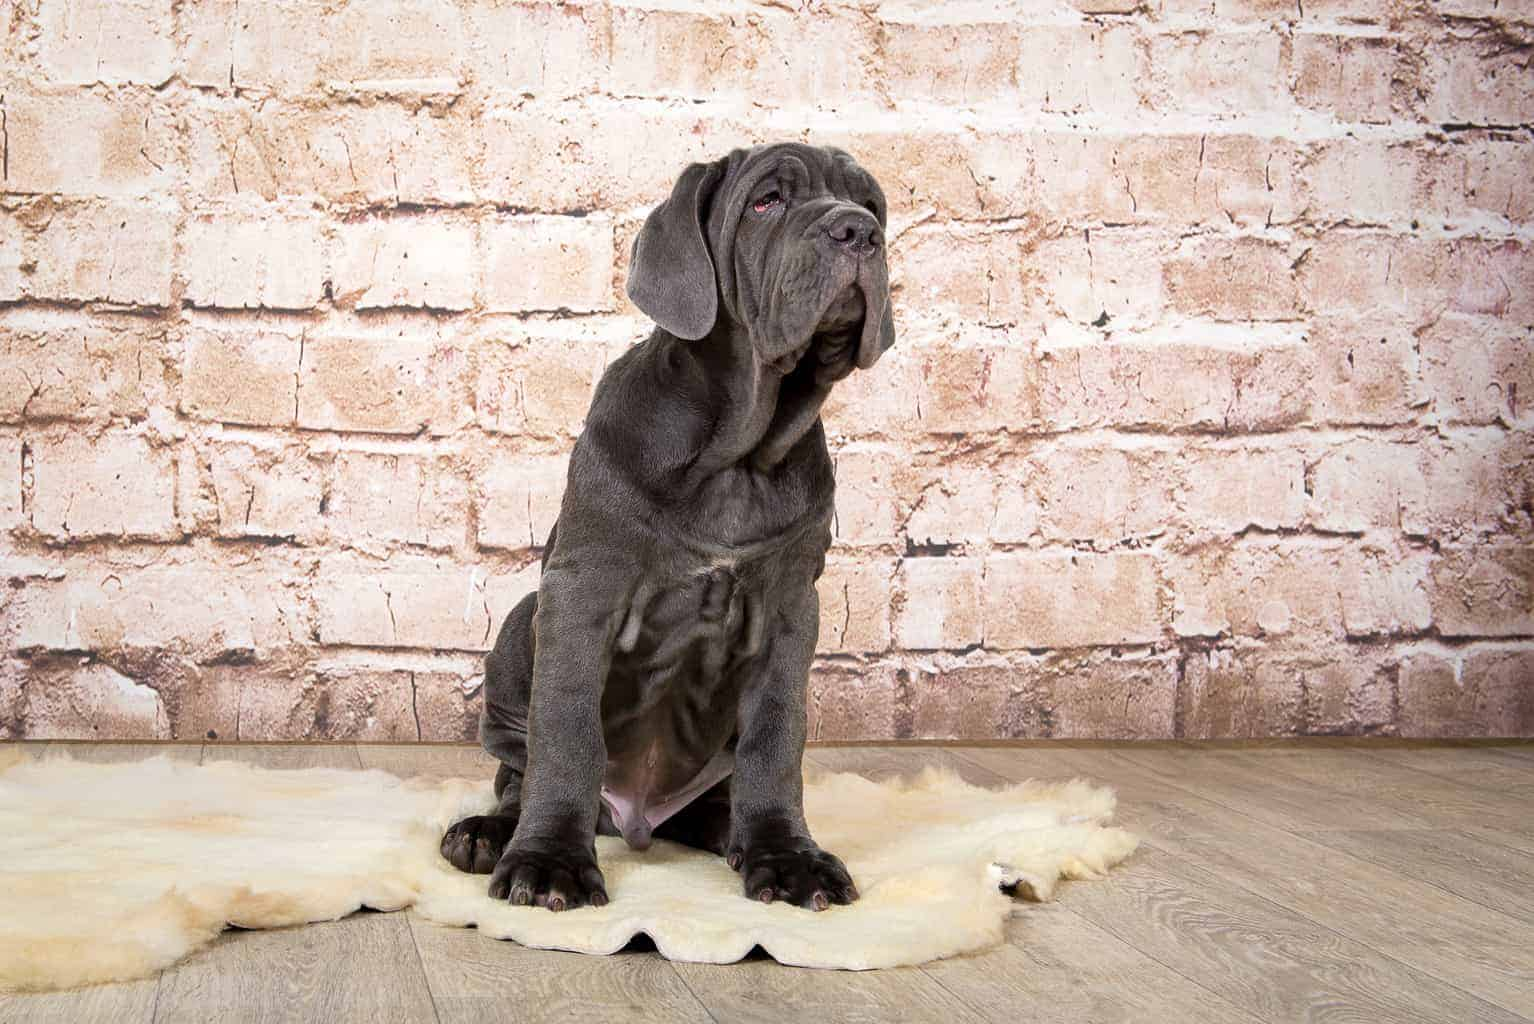 Grey, black and brown puppies breed Neapolitana Mastino. Dog handlers training dogs since childhood.